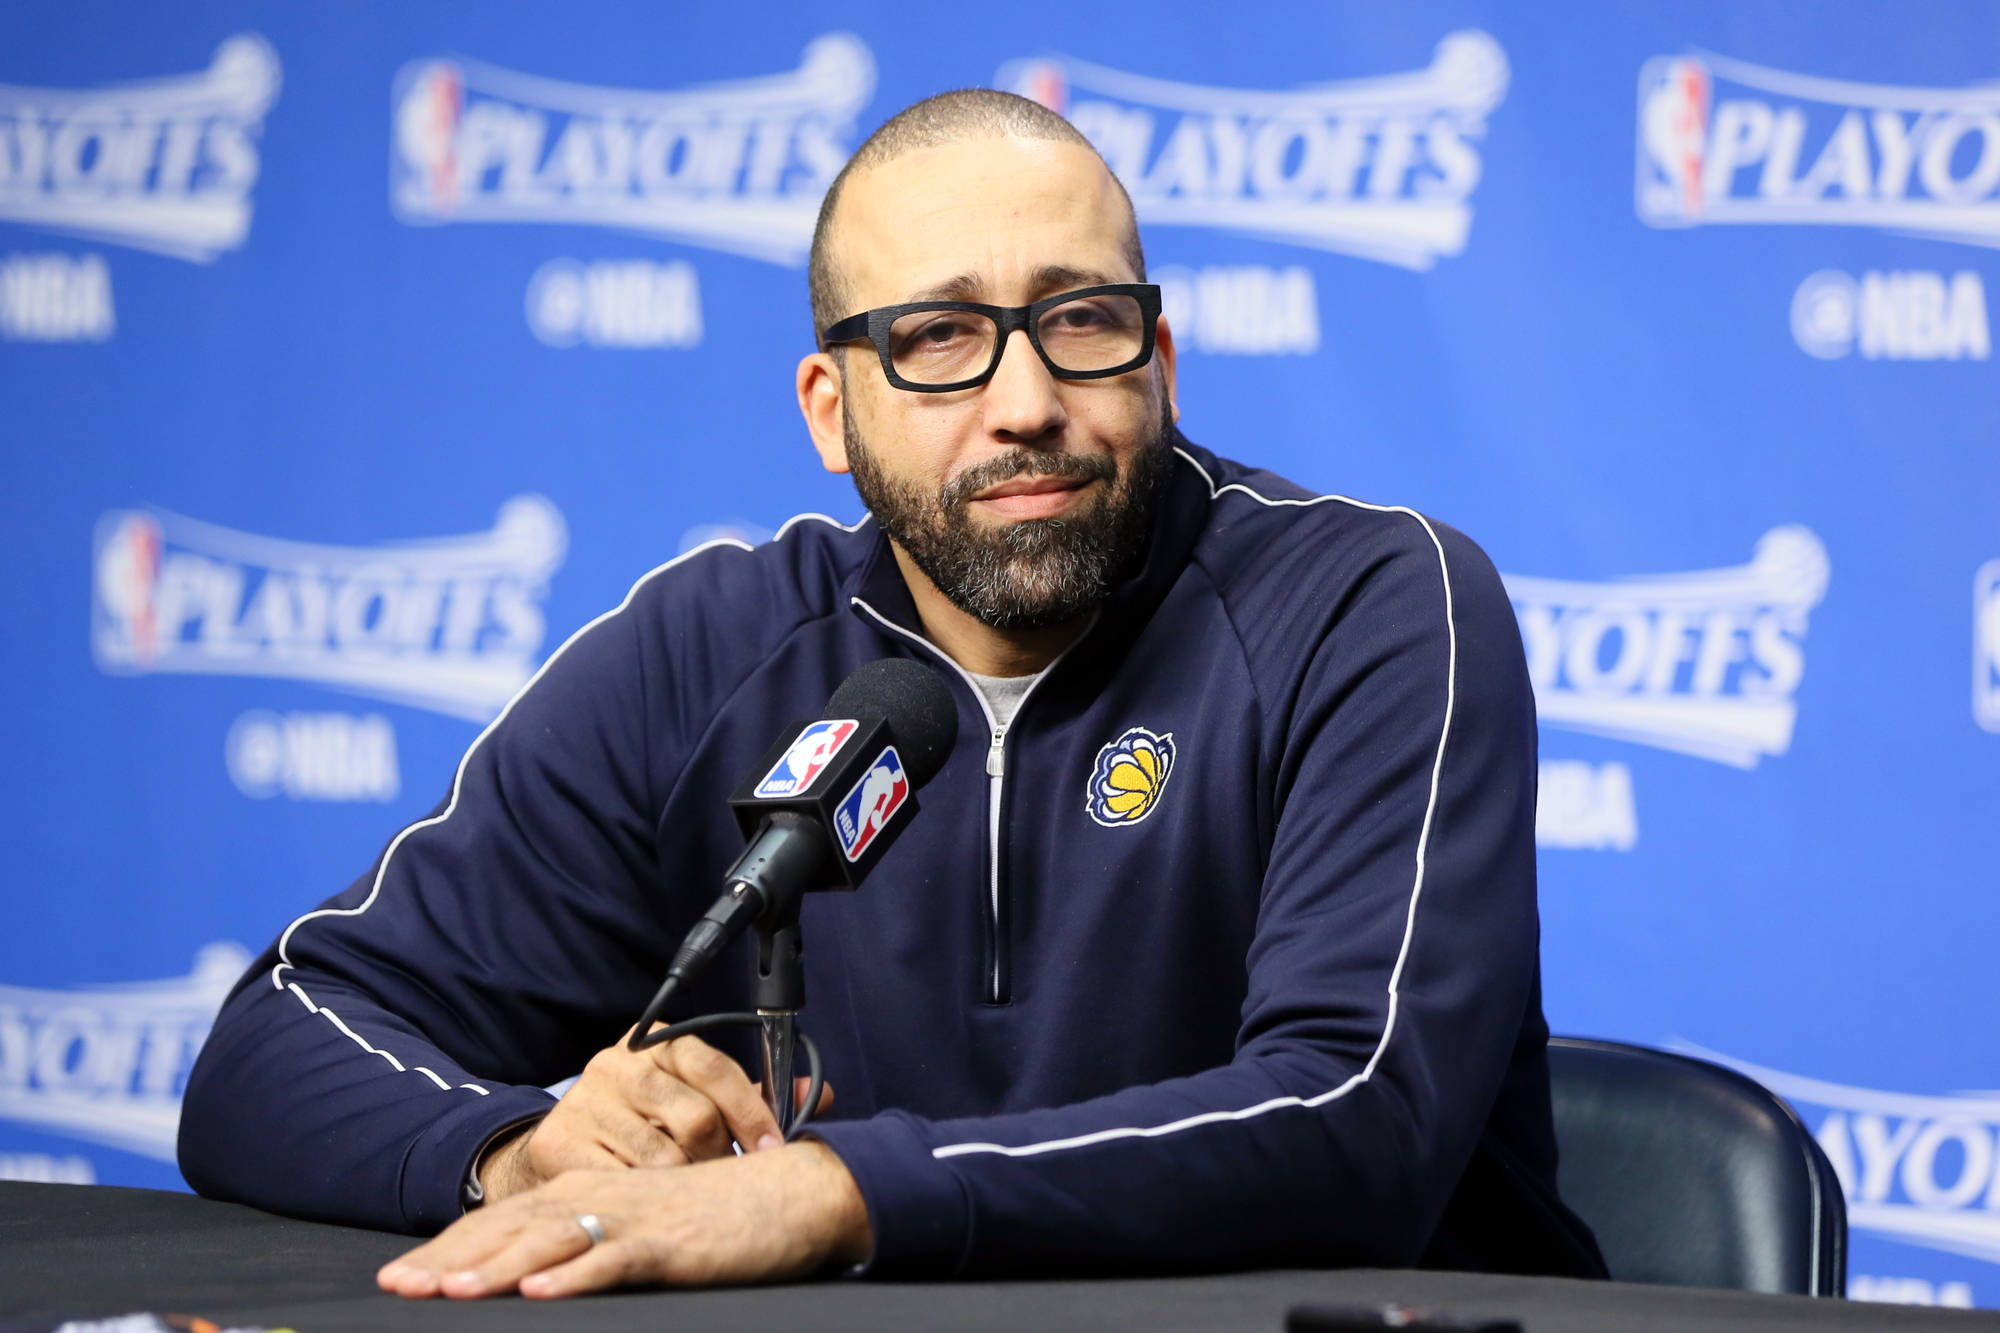 Lakers could replace Luke Walton with David Fizdale, report says